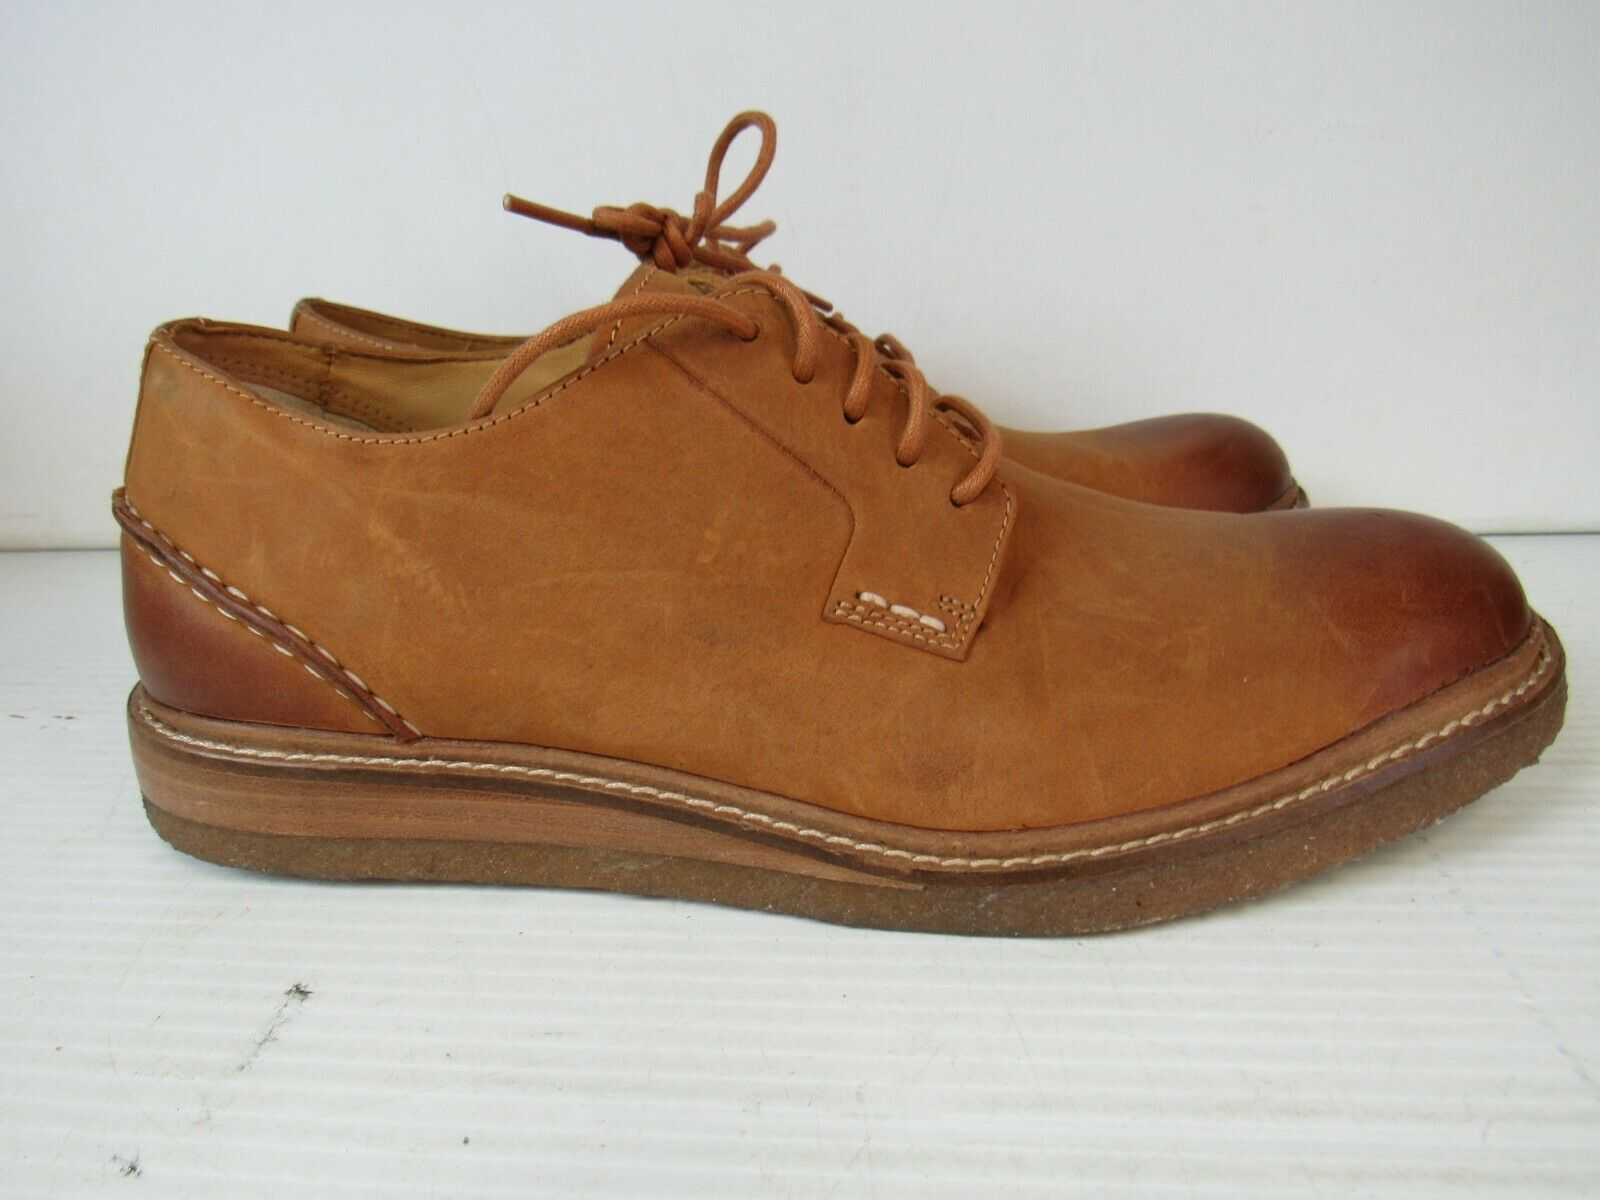 Para Hombre Sperry Top-Sider oro Cup Crepe Oxfords, STS16832 tamaño 9 tan M927